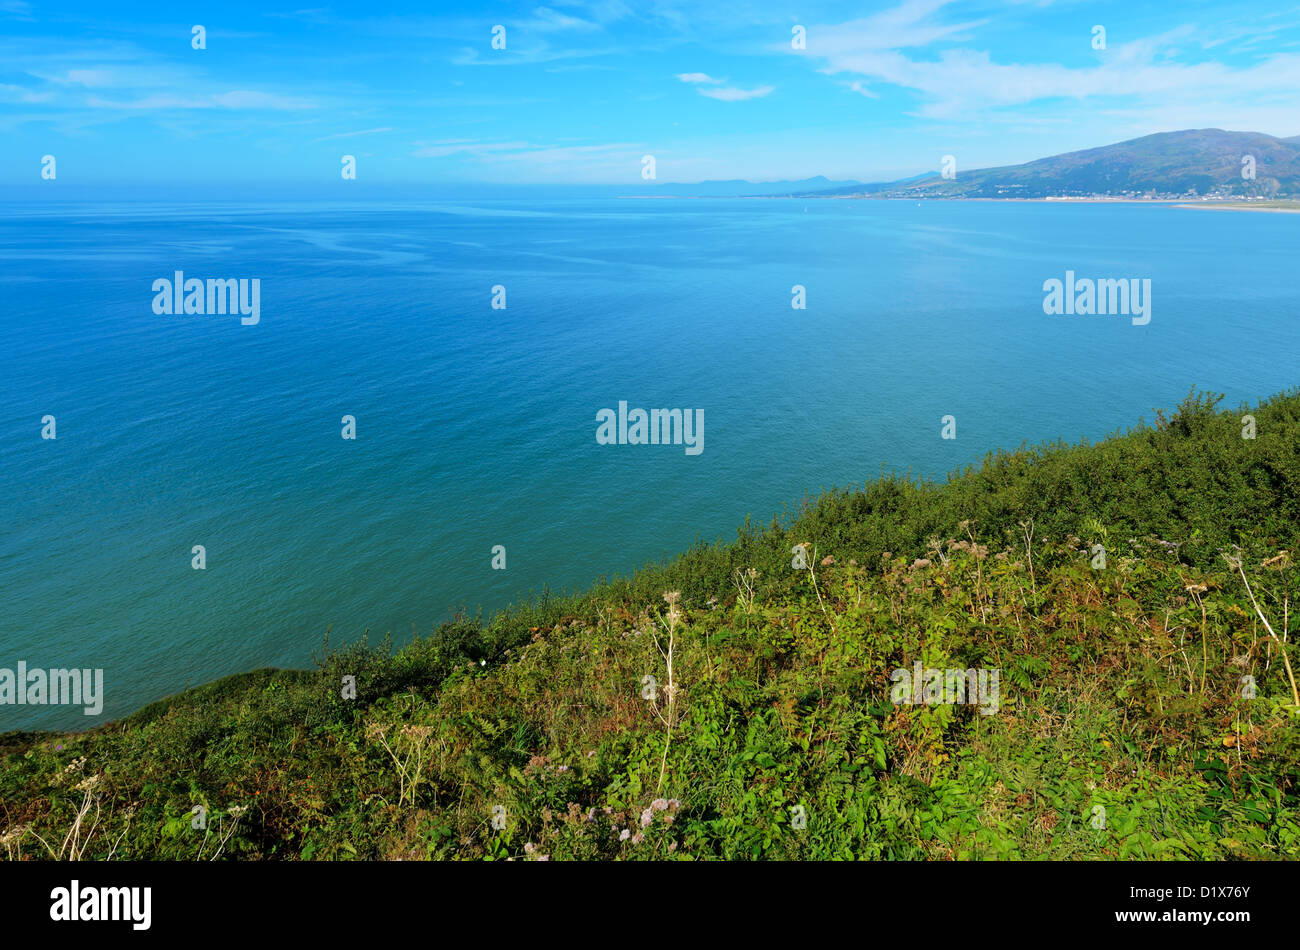 Cardigan Bay viewed from cliff above Barmouth in Gwynedd Wales. - Stock Image